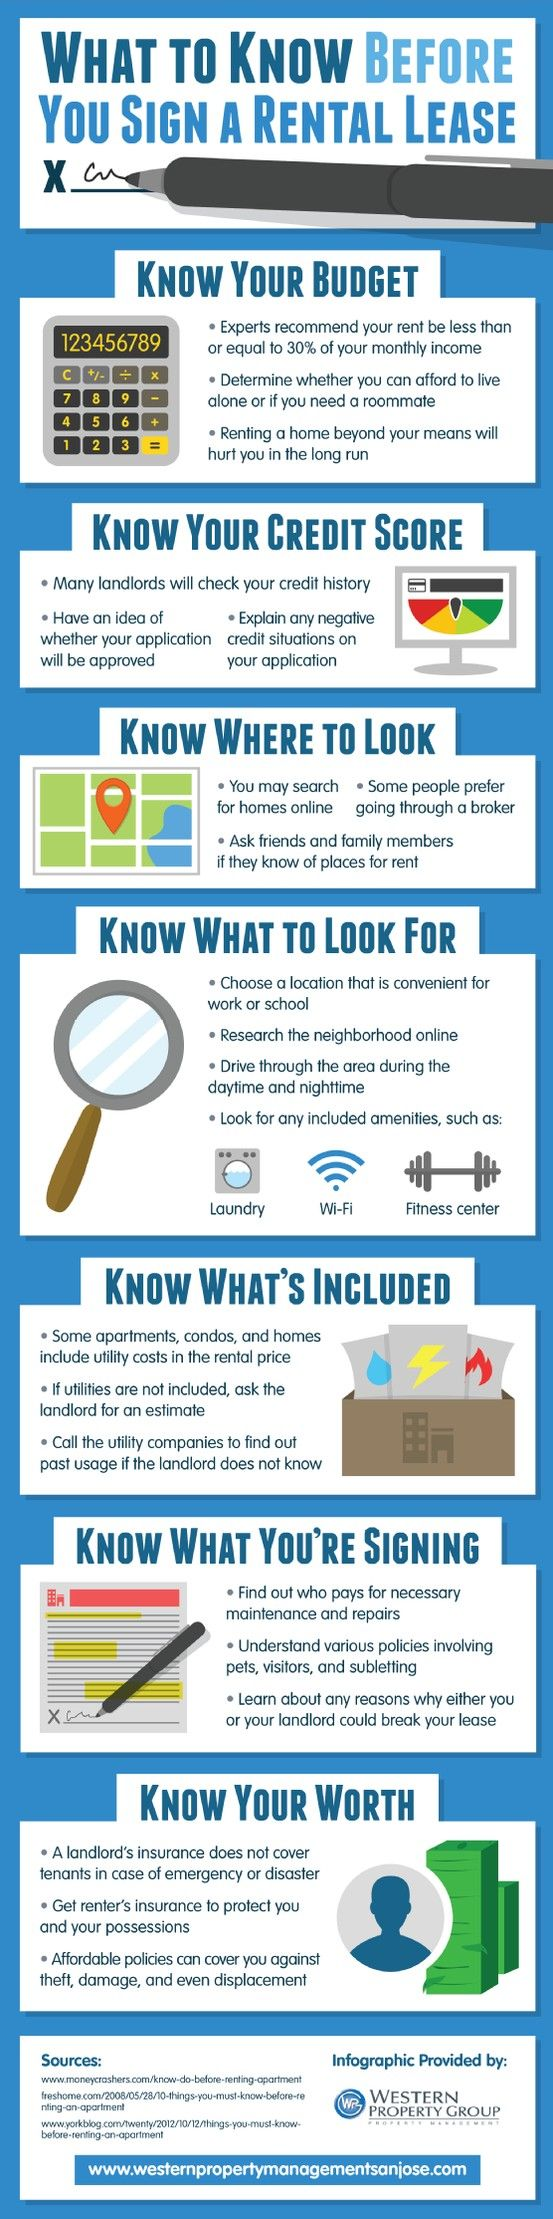 [Infographic] What to Know Before You Sign a Rental Lease